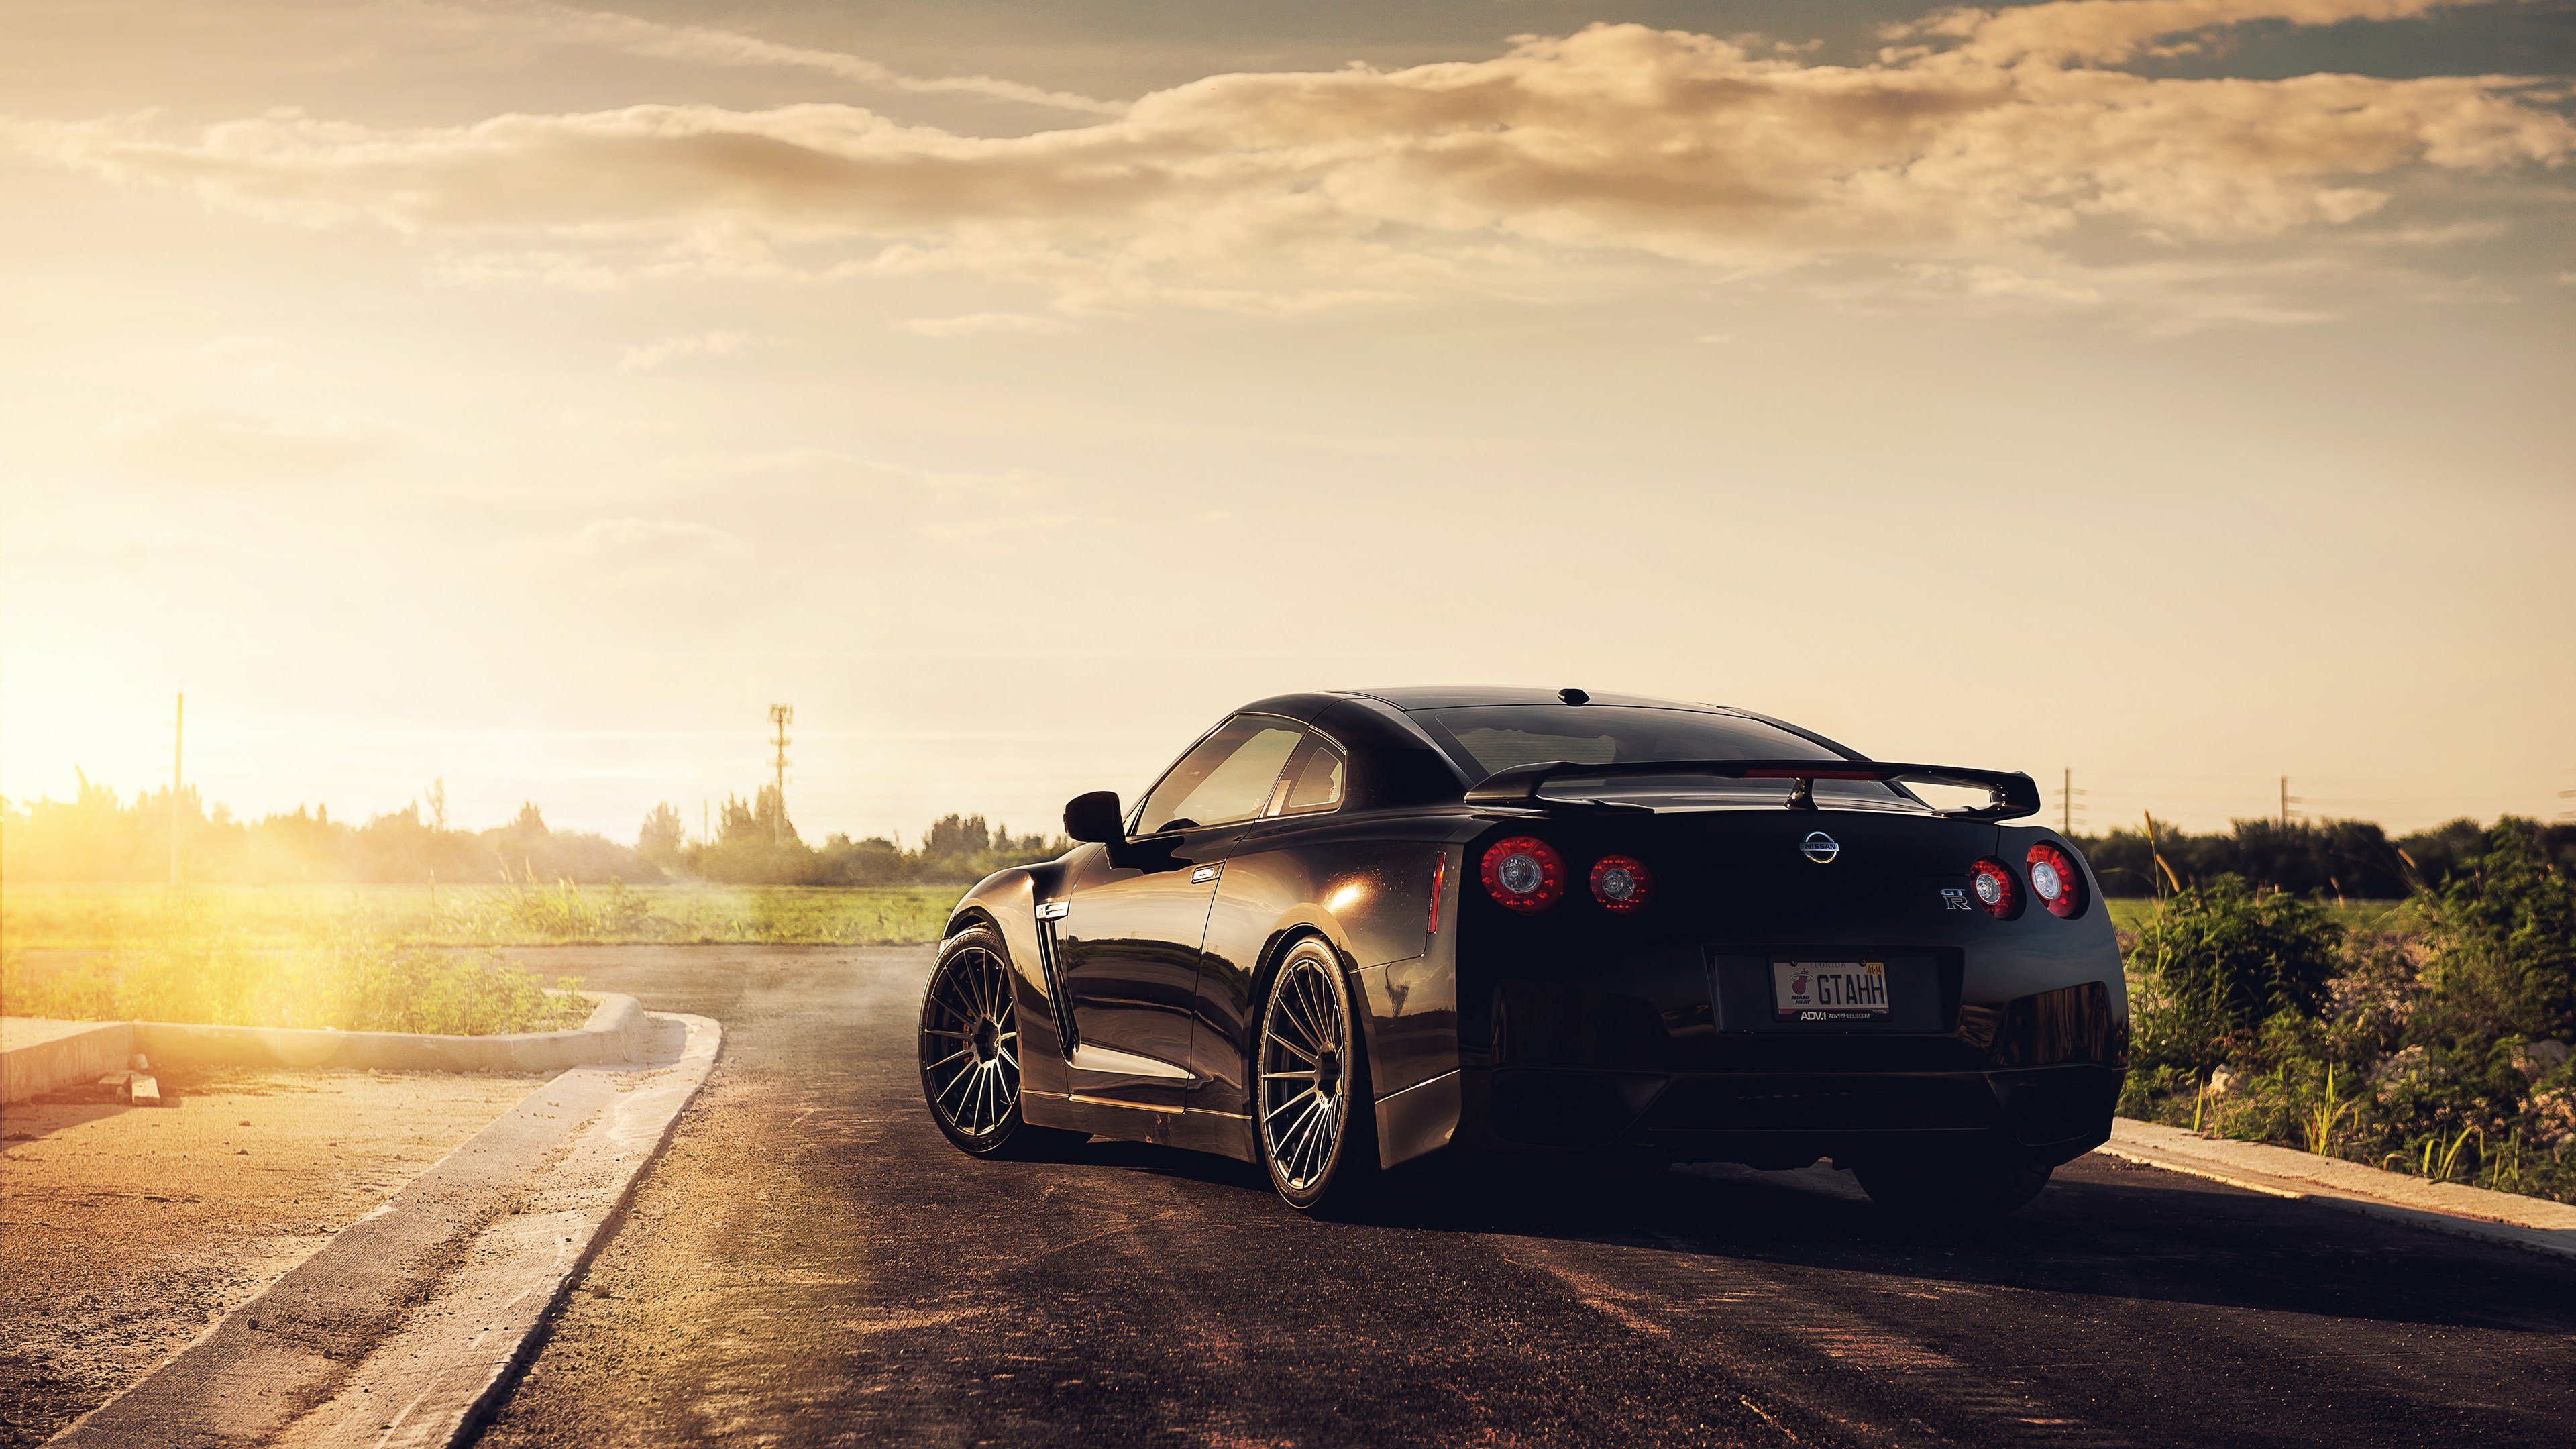 Latest 1 Nissan Adv 1 Gtr Hd Wallpapers Background Images Free Download